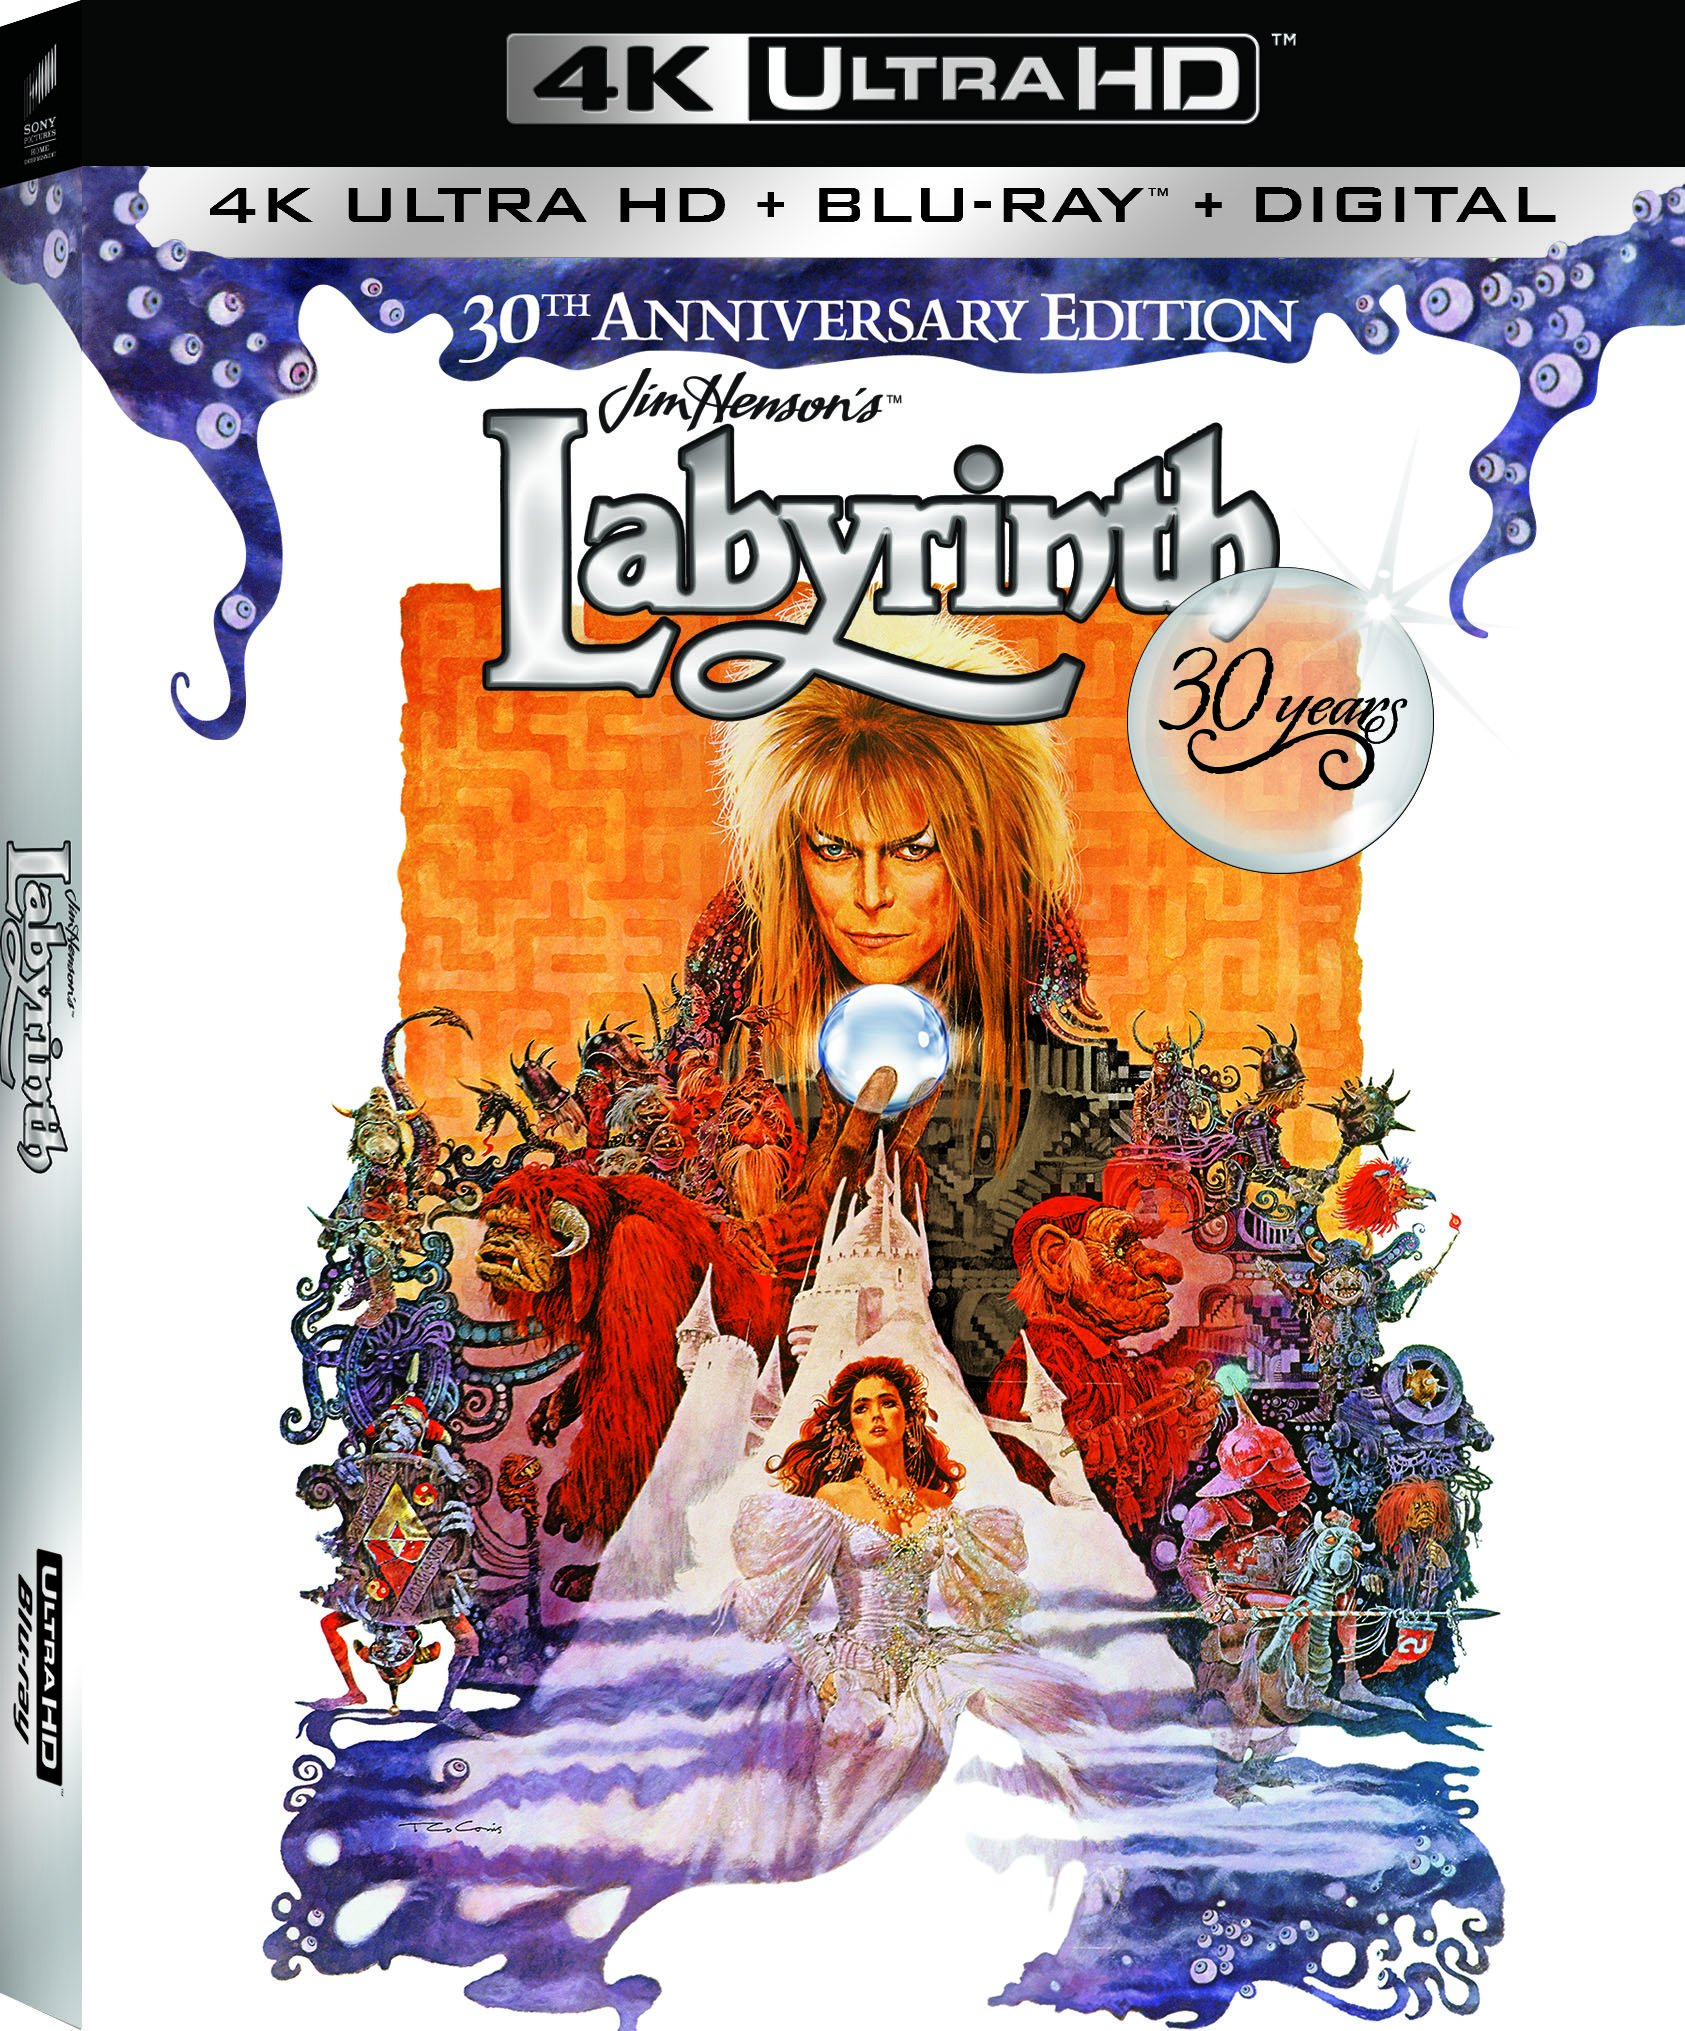 4K Blu-ray : Labyrinth (30th Anniversary Edition) (With Blu-Ray, Ultraviolet Digital Copy, Anniversary Edition, 2 Pack, Widescreen)